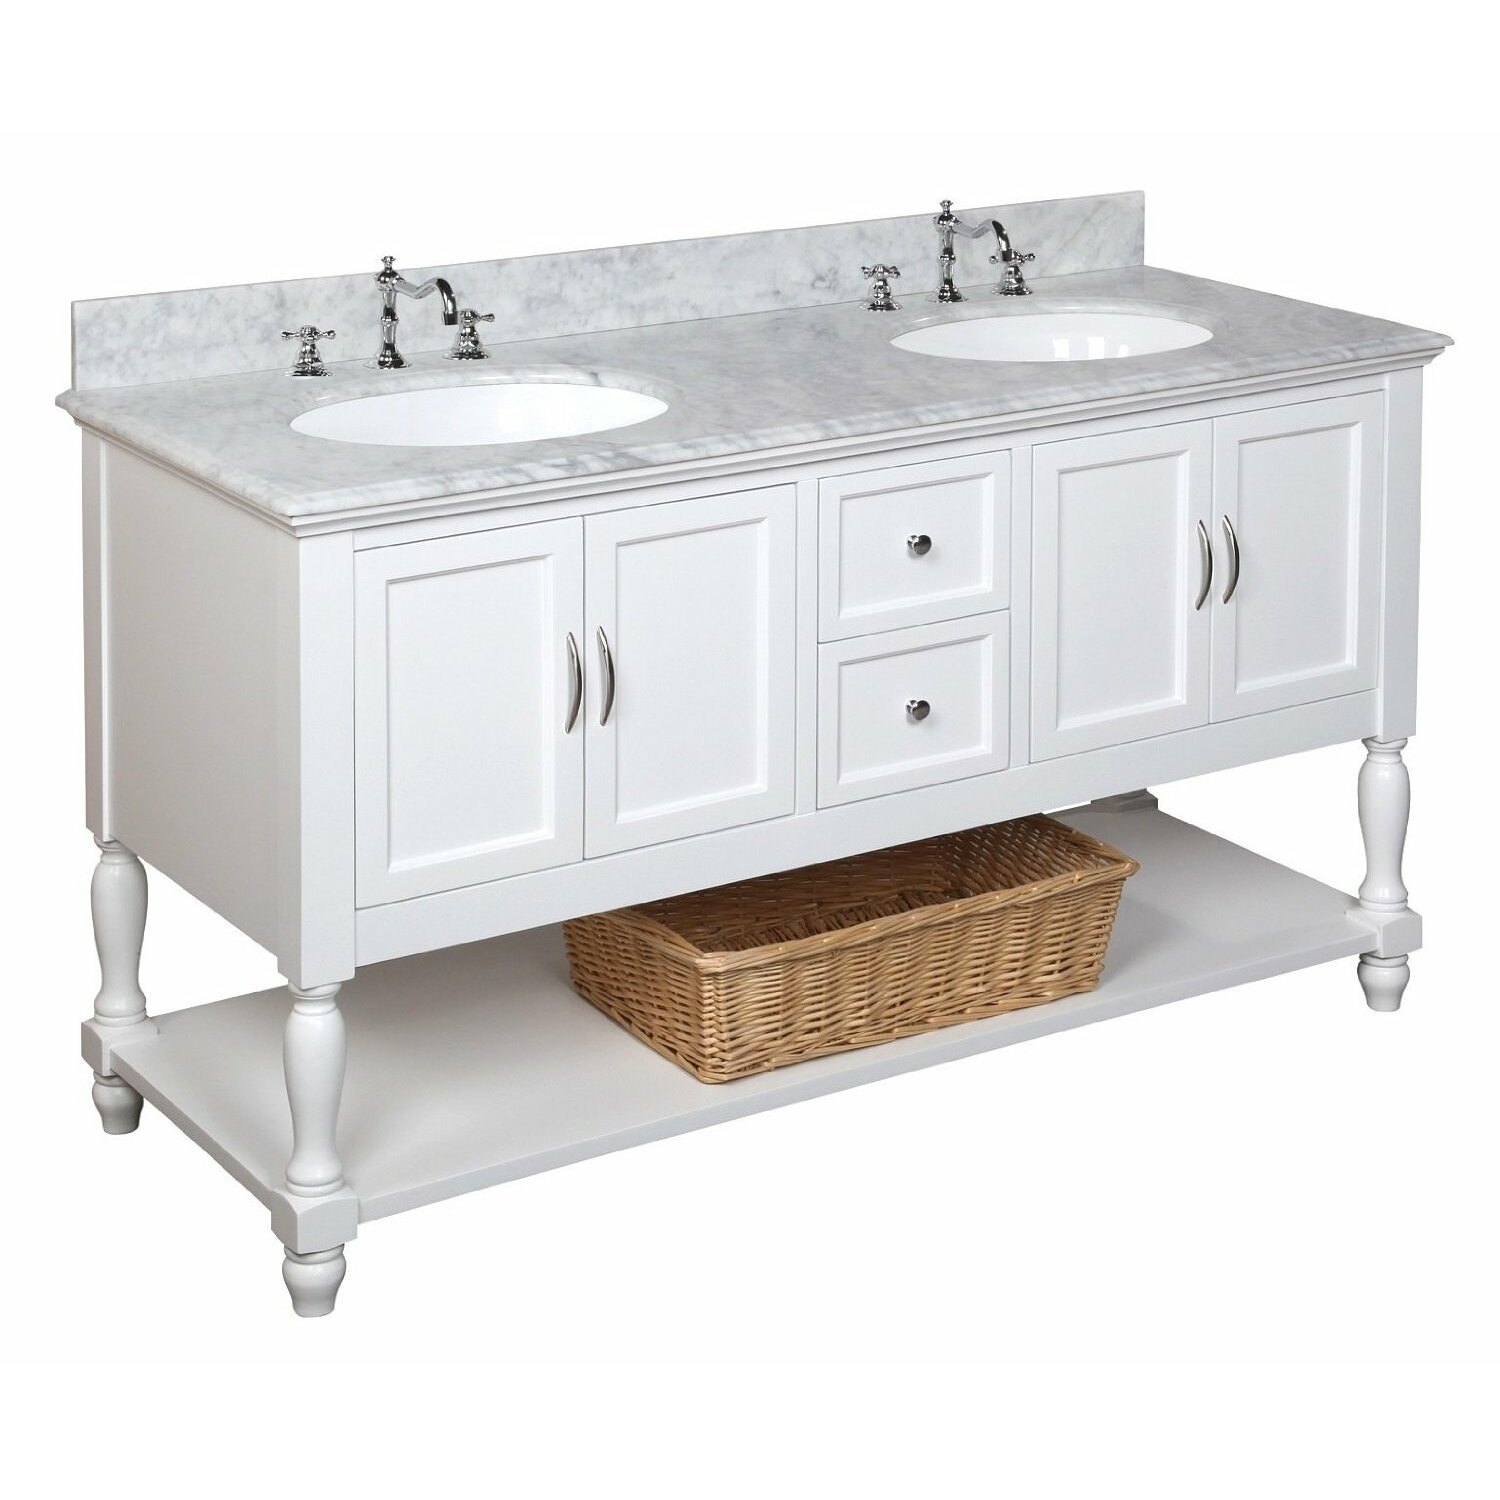 60 Bathroom Cabinet Kbc Beverly 60 Double Bathroom Vanity Set Reviews Wayfair